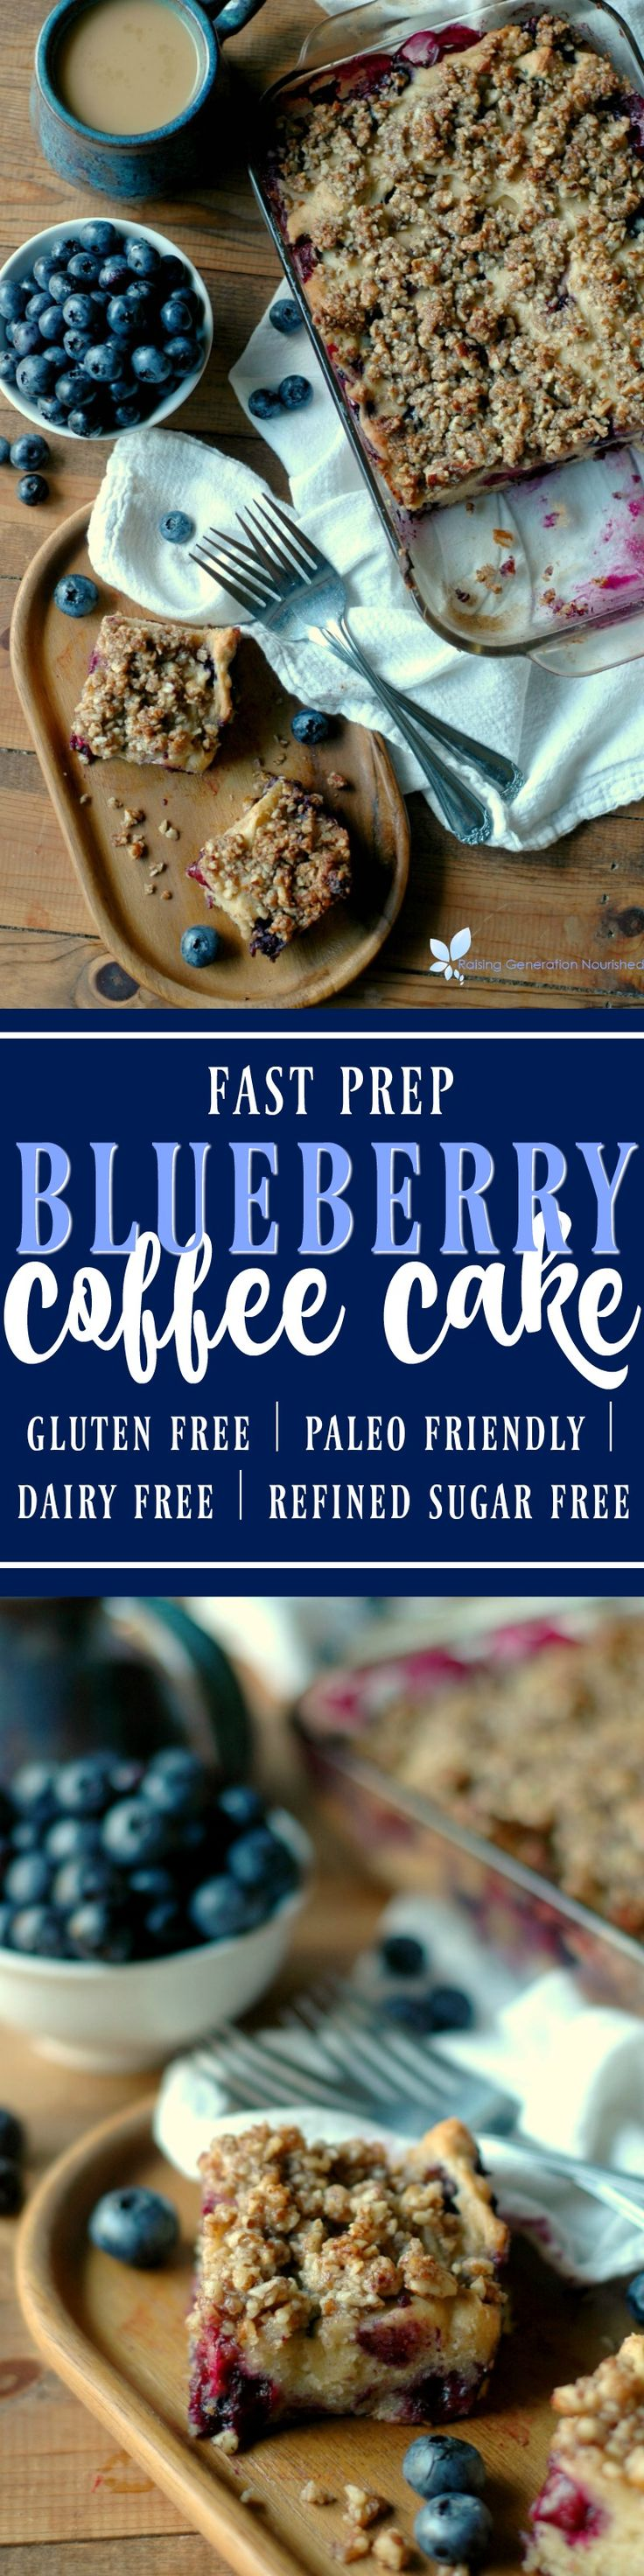 Enjoy the very best of summer without fussing in the kitchen all morning with Fast Prep Blueberry Coffee Cake!